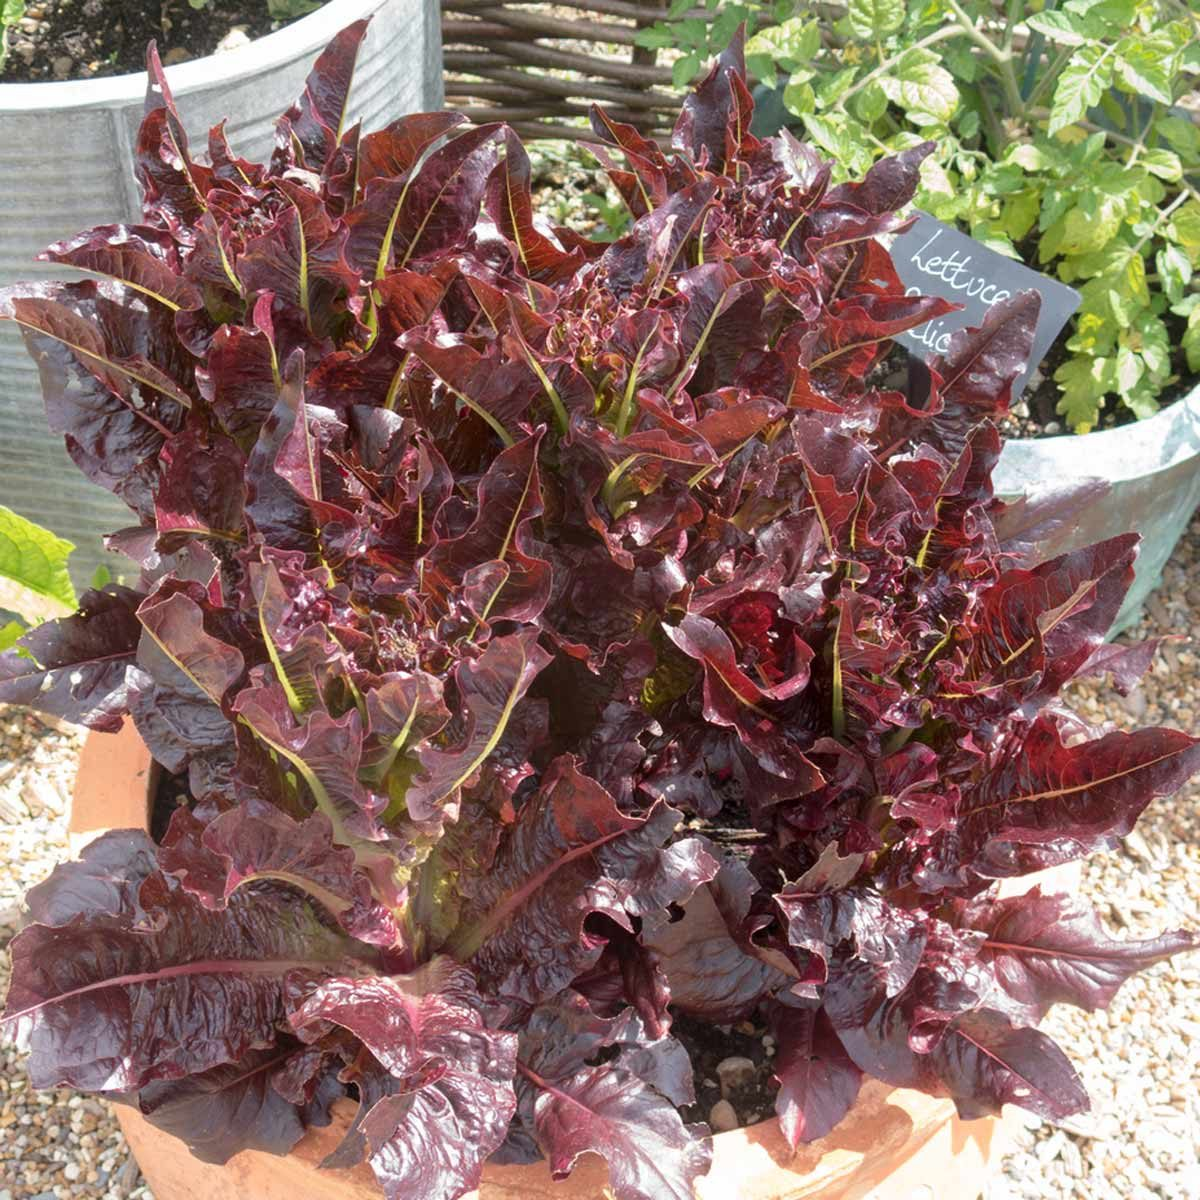 purple lettuce leaf